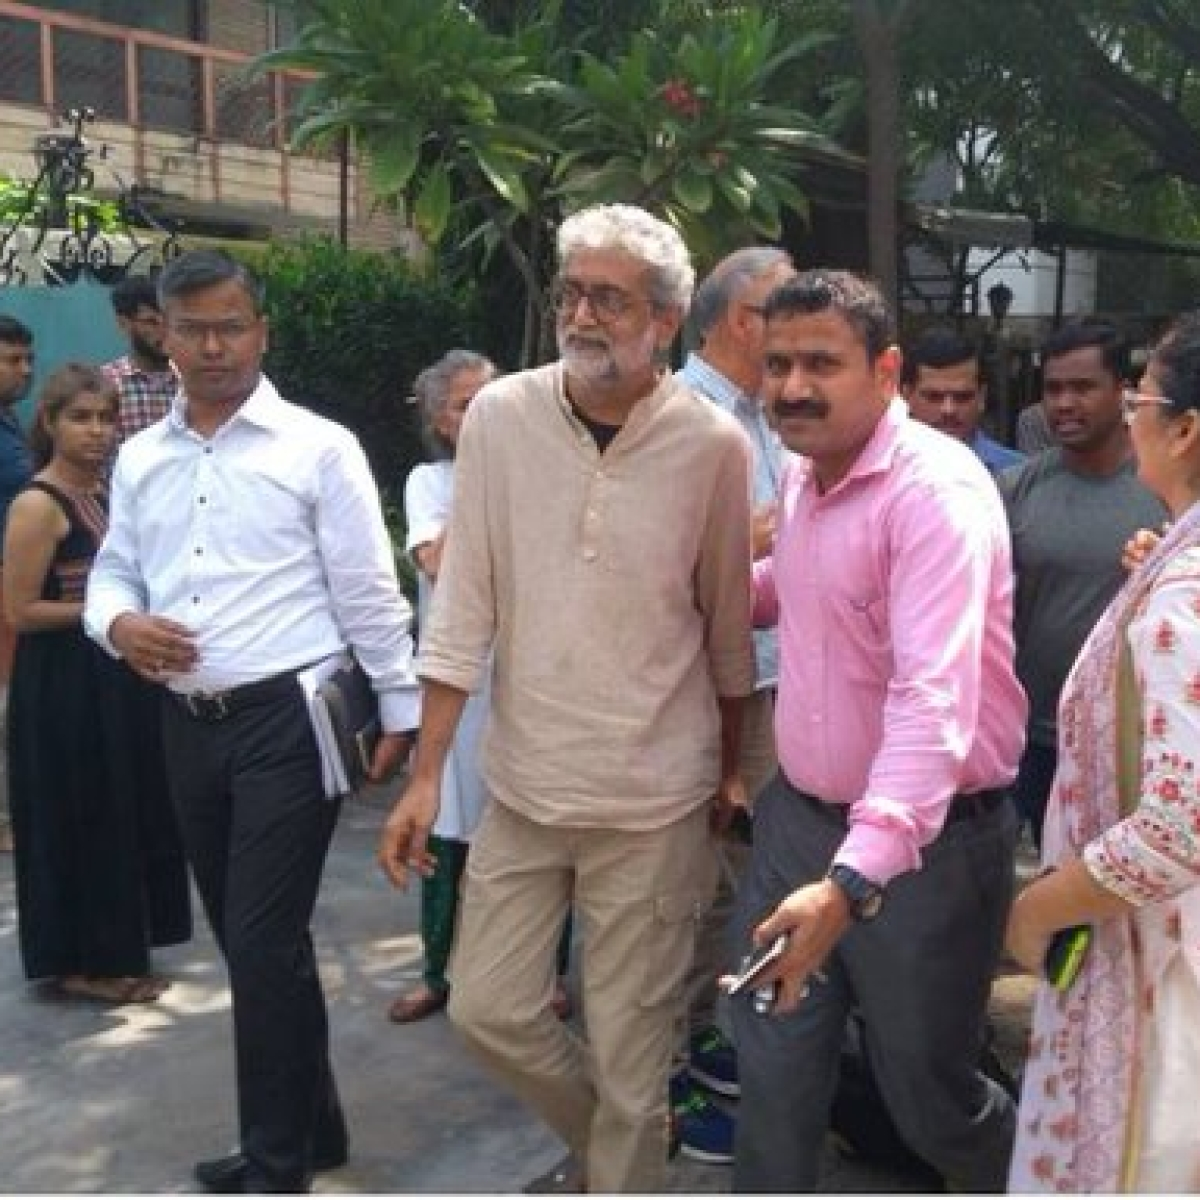 SC dismisses bail plea of activist Gautam Navlakha in Bhima Koregaon case